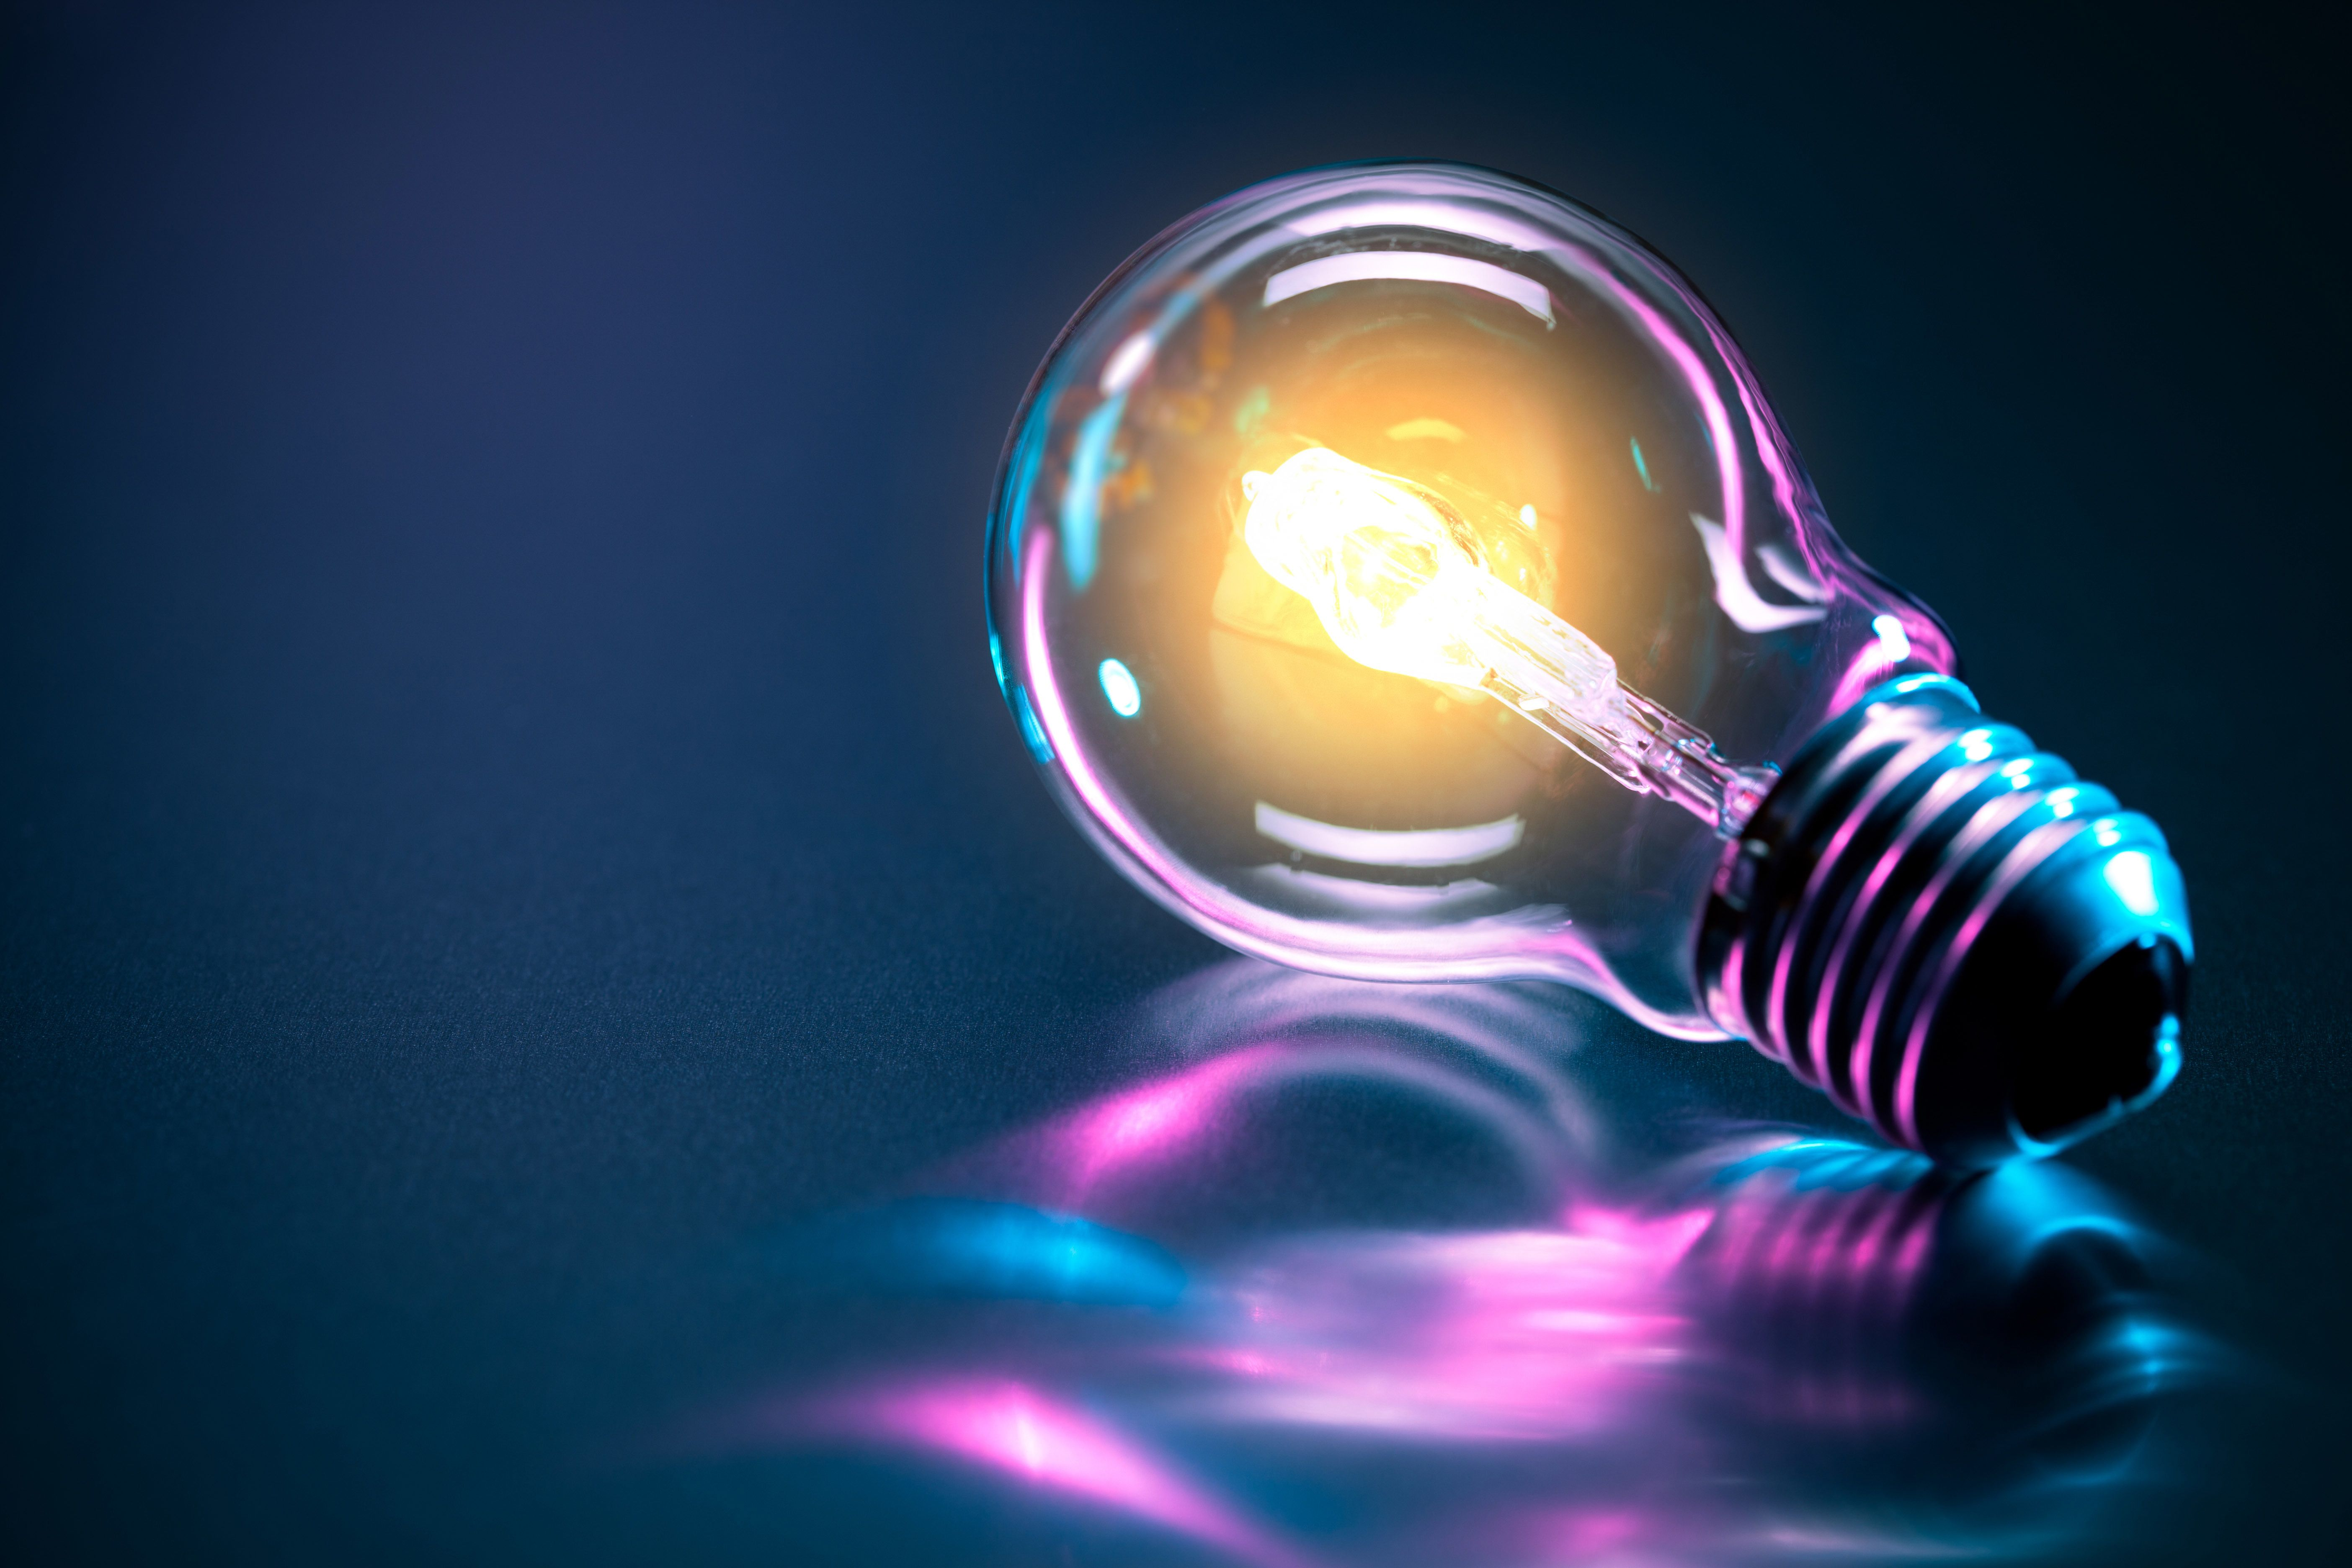 Bulb Neon Reflection Electric Emitte Rendering Backgound Magic4walls Com Electrical Projects Electricity Purple Backgrounds